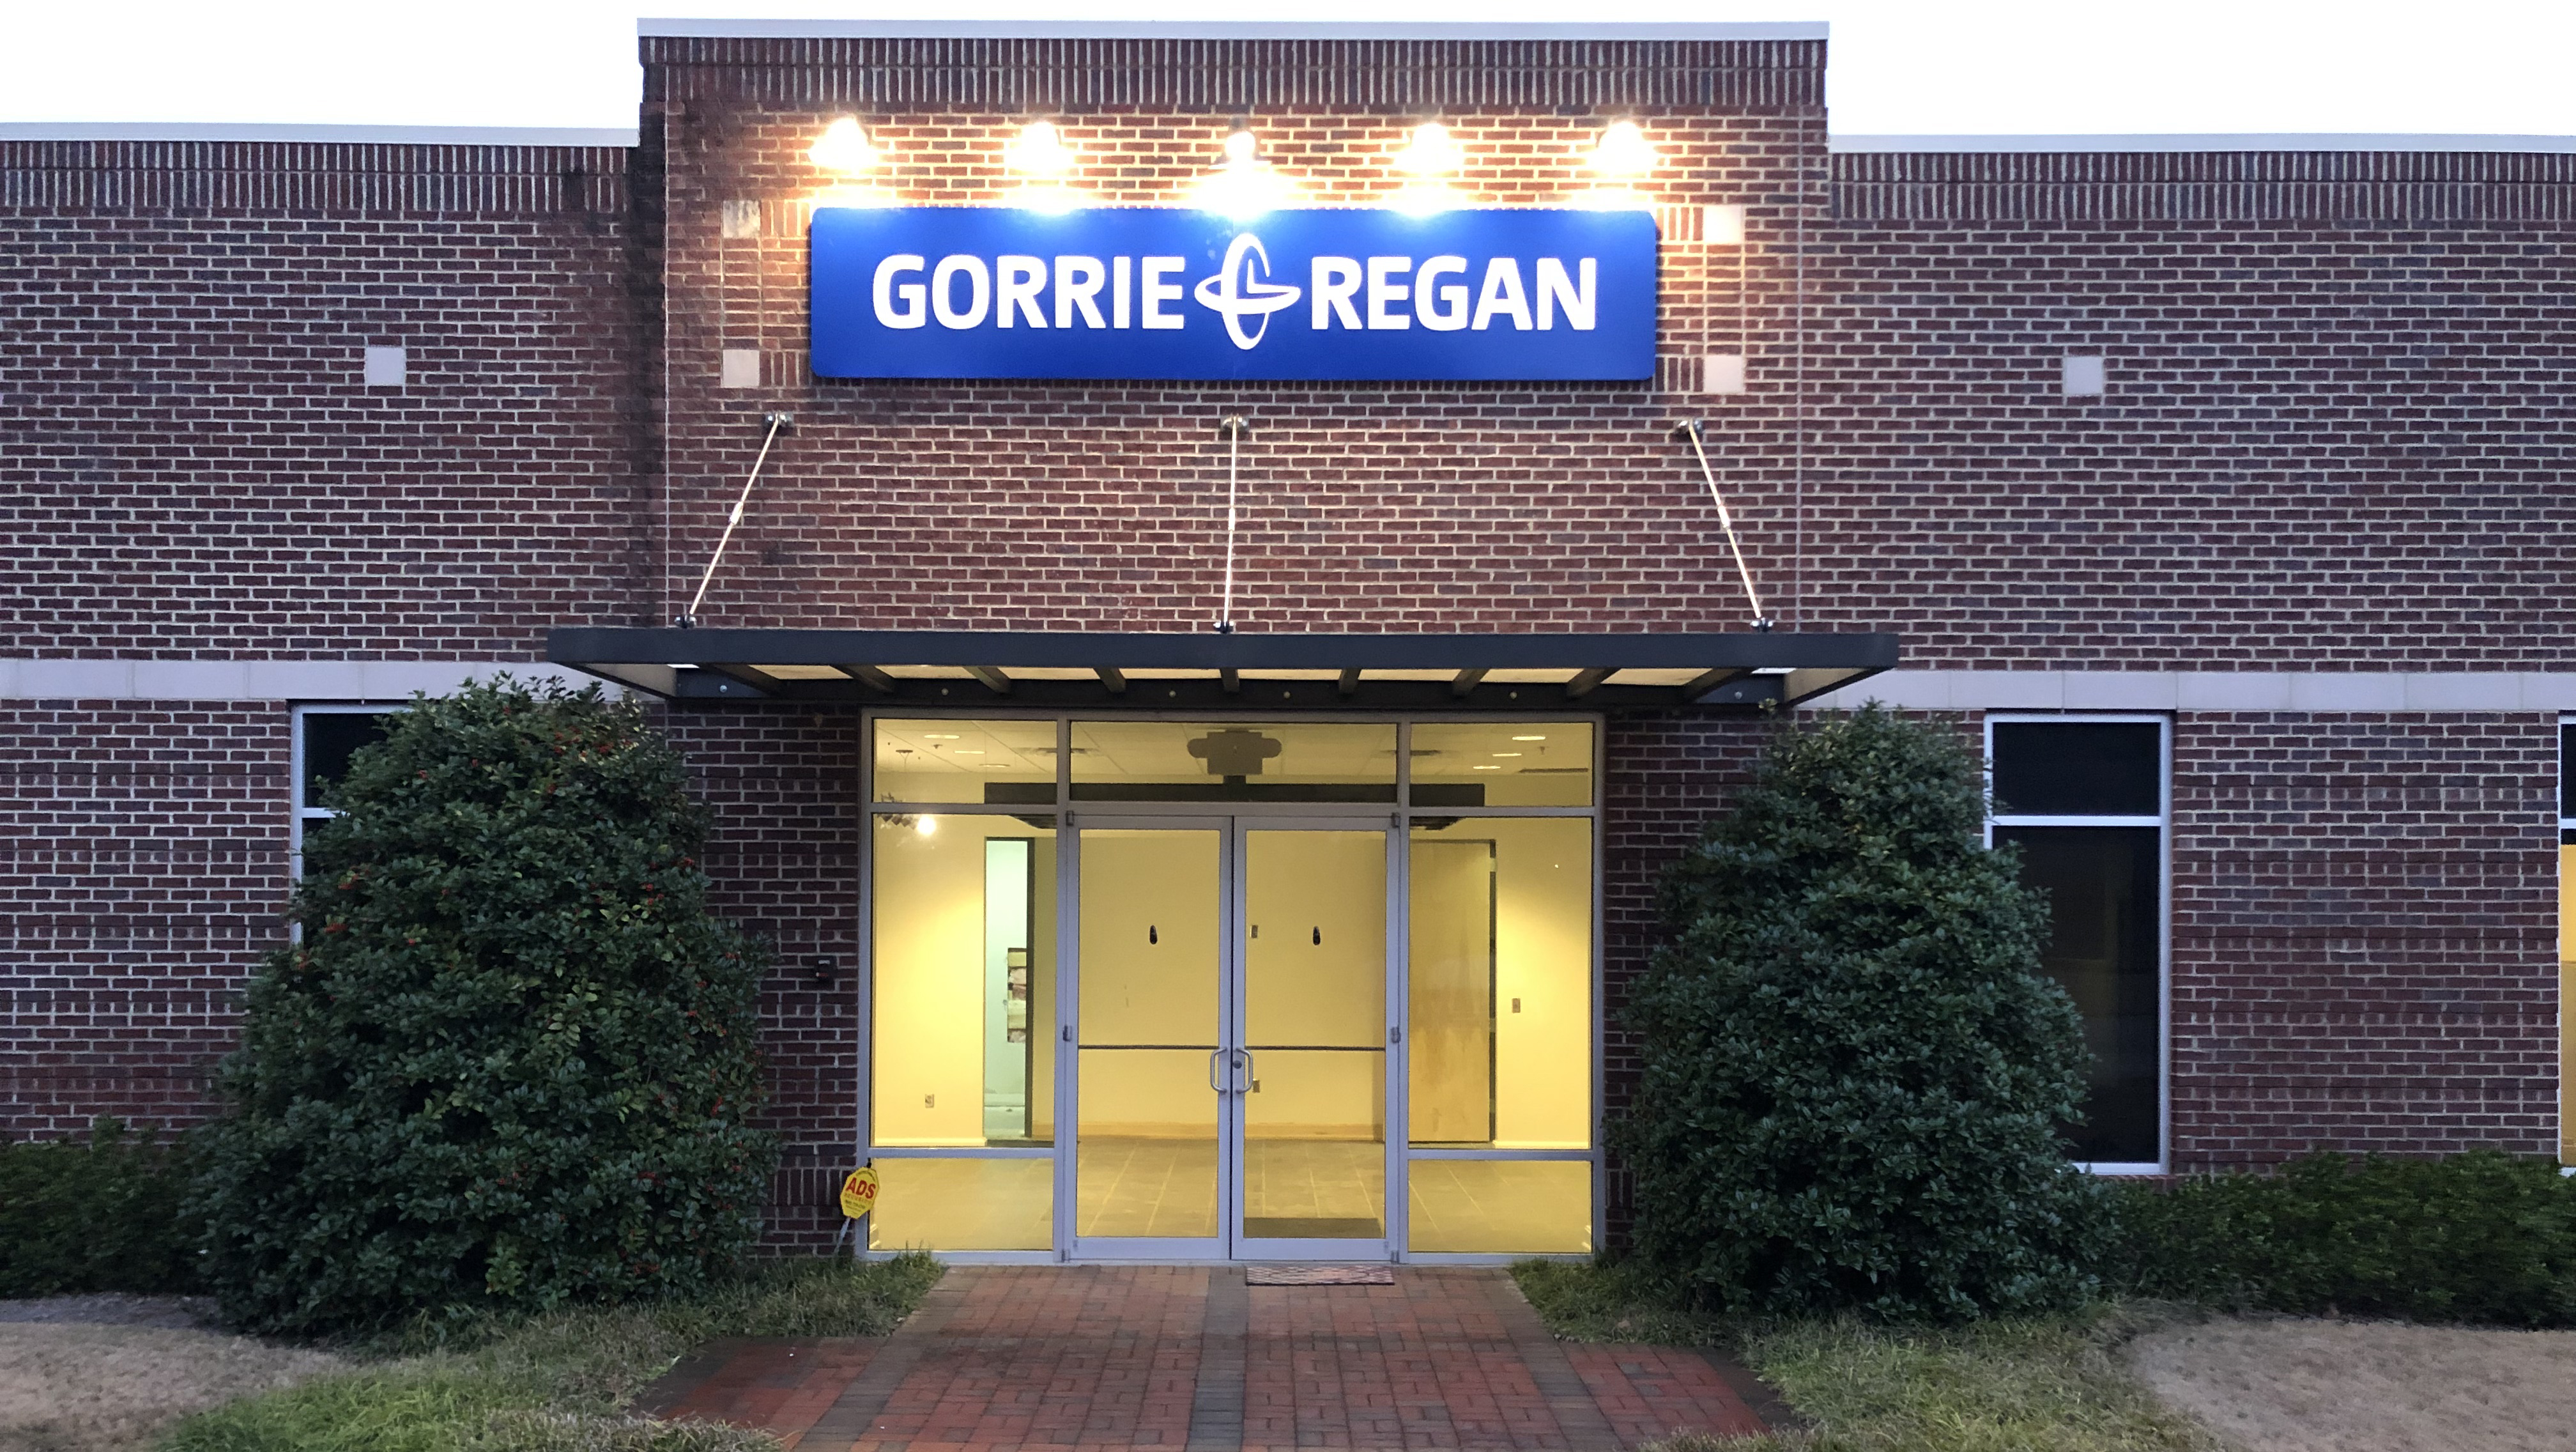 Gorrie-Regan – Time Tracking, Parking Control & Security Systems